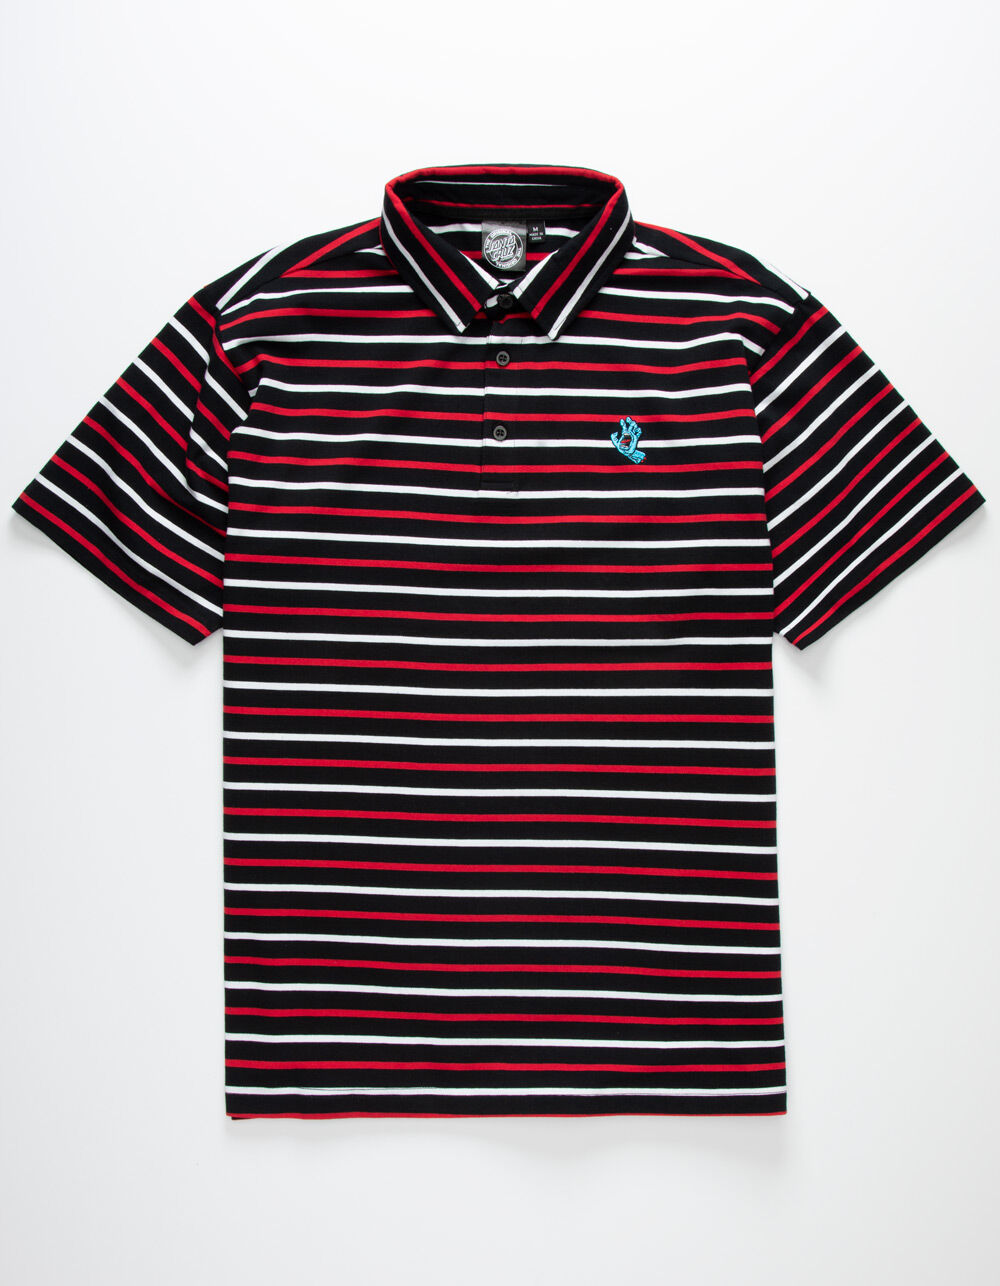 SANTA CRUZ Screaming Hand Red & Black Stripe Polo Shirt